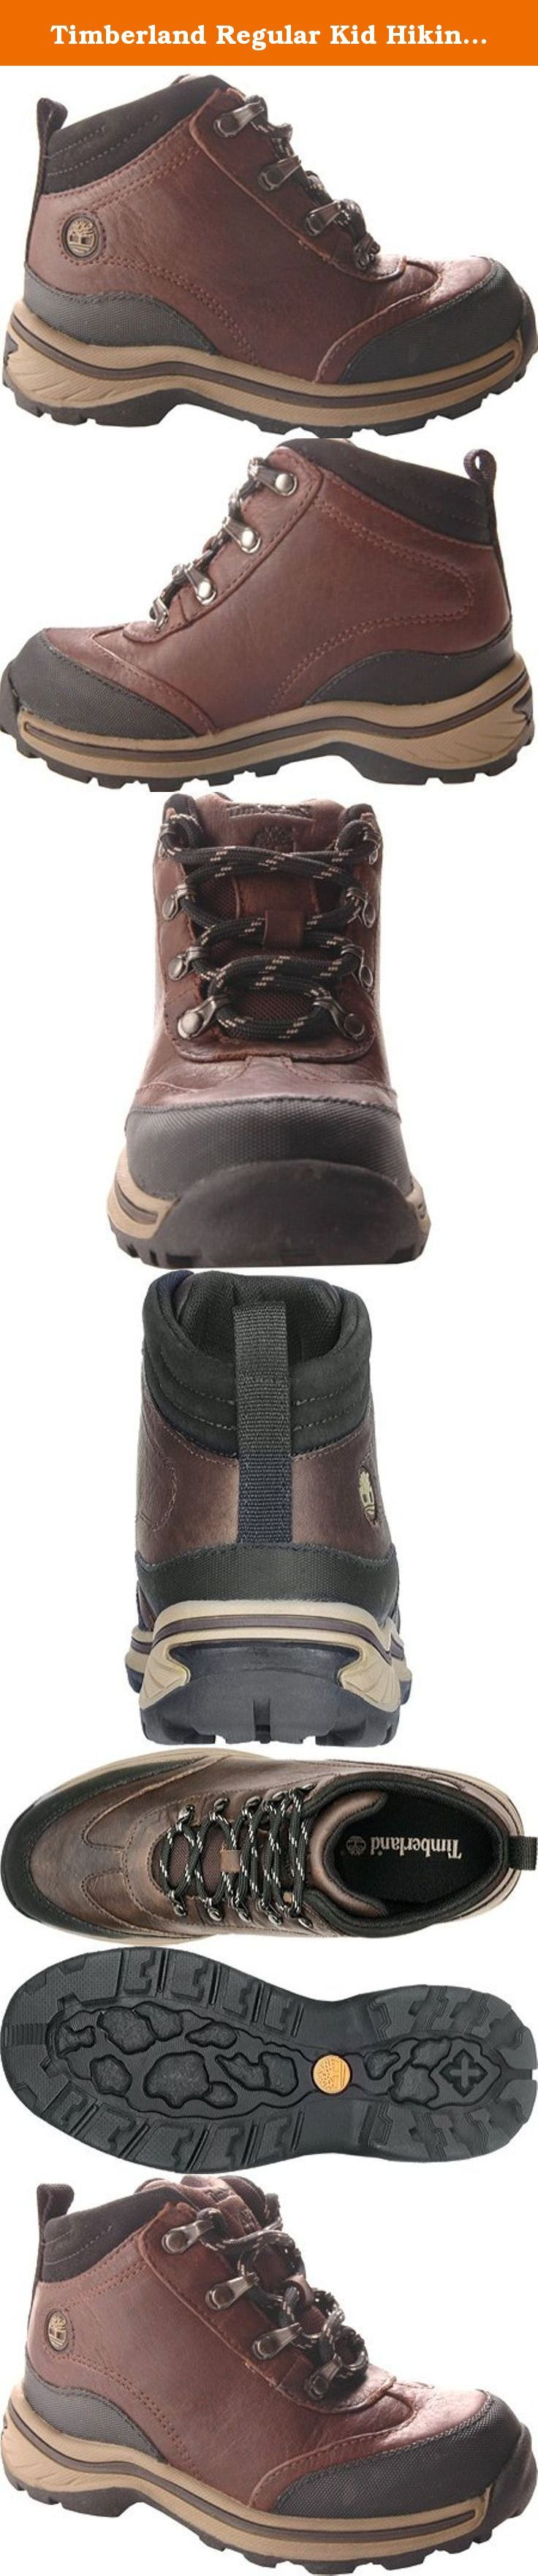 Timberland Regular Kid Hiking Boot (Toddler/Little Kid/Big Kid),Brown Smooth,5.5 M US Big Kid. Padded collar for comfort. Rustproof hardware for durability. Thick, rugged non-marking rubber outsole for.